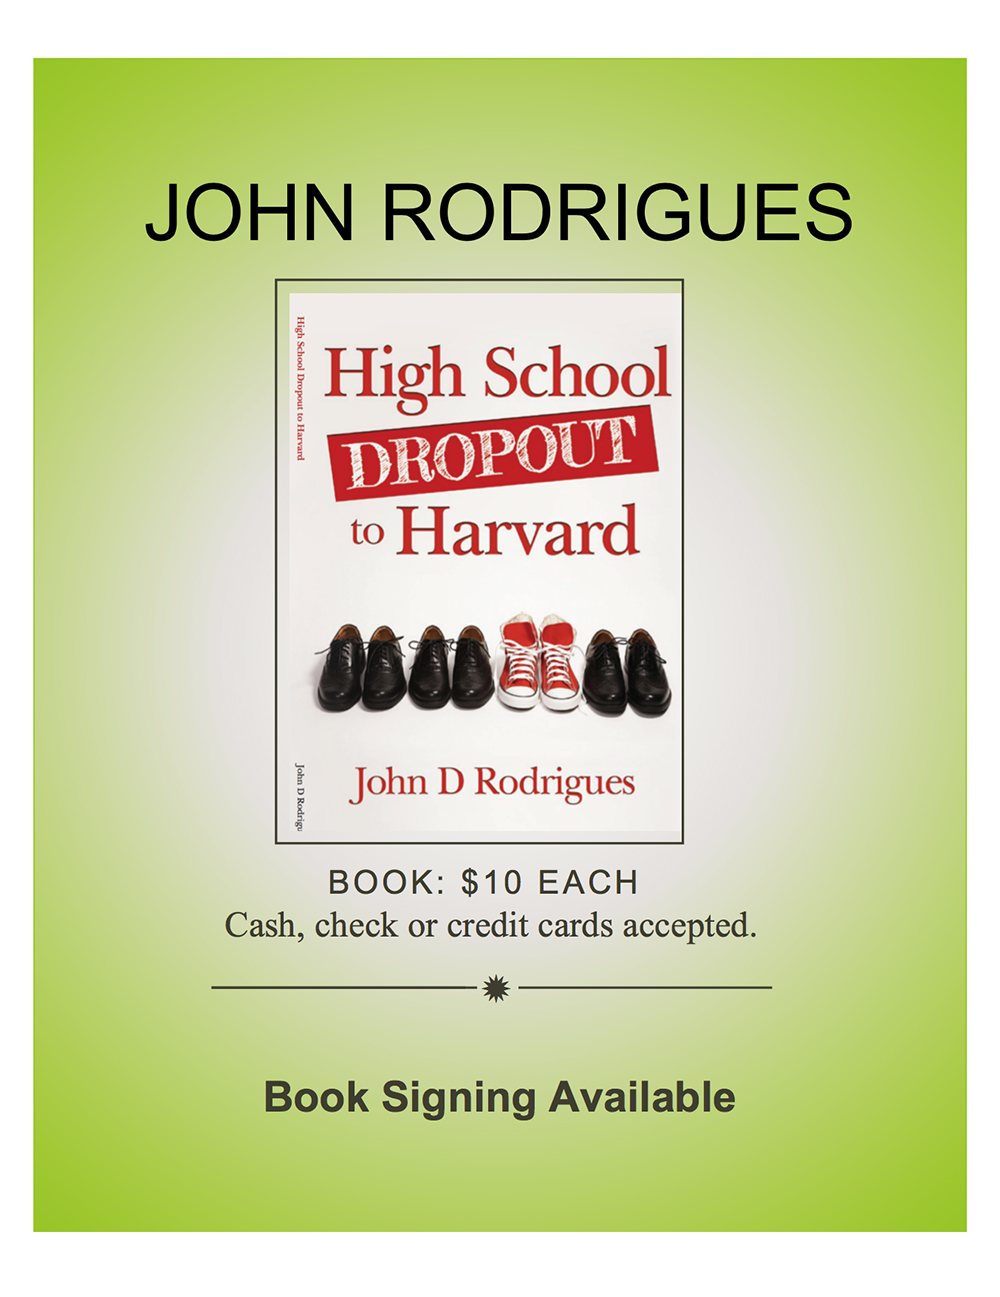 John's book for sale